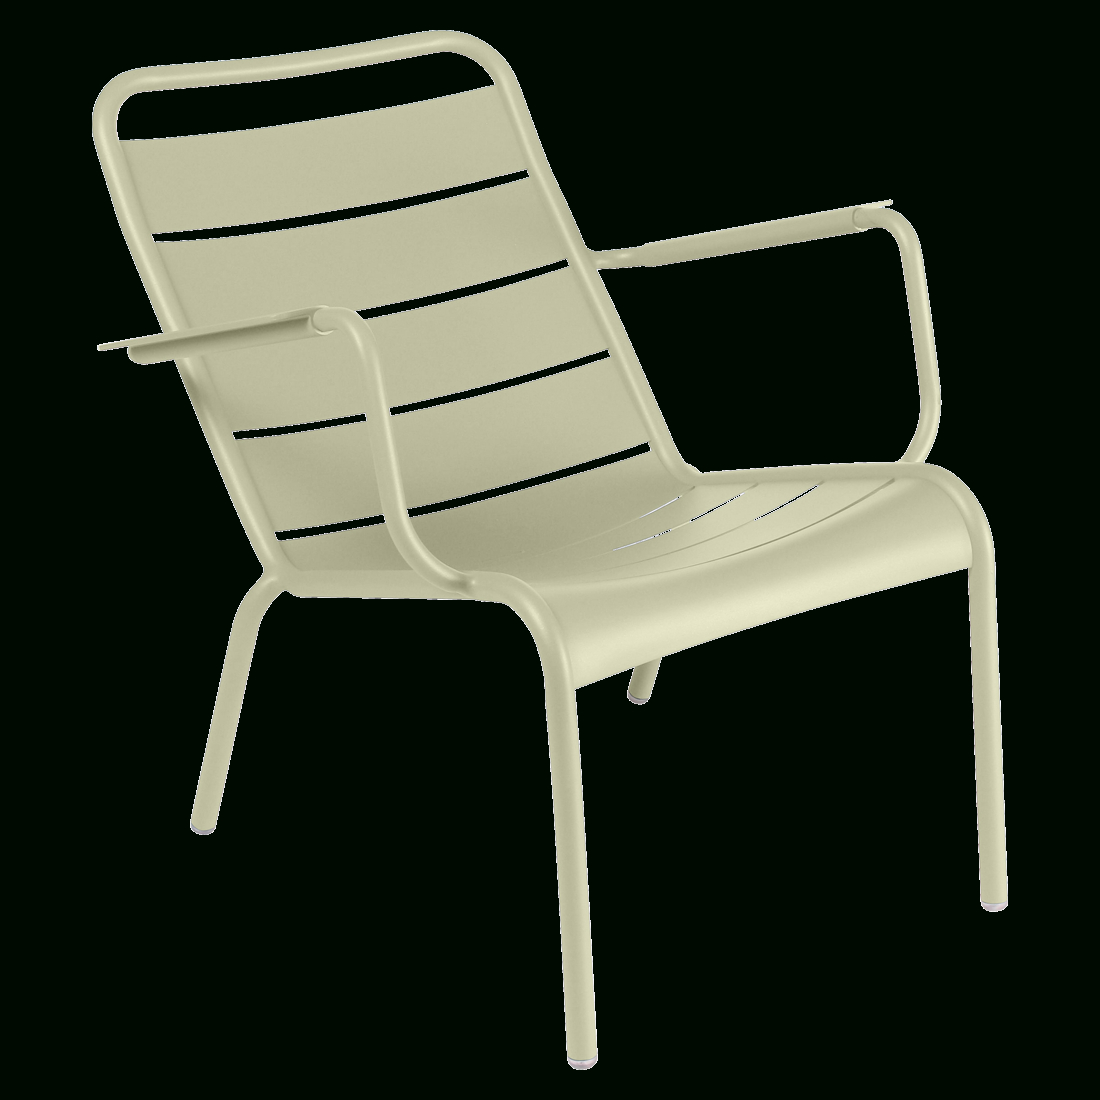 Luxembourg Low Armchair For Outdoor Living Space intérieur Fermob Jardin Du Luxembourg